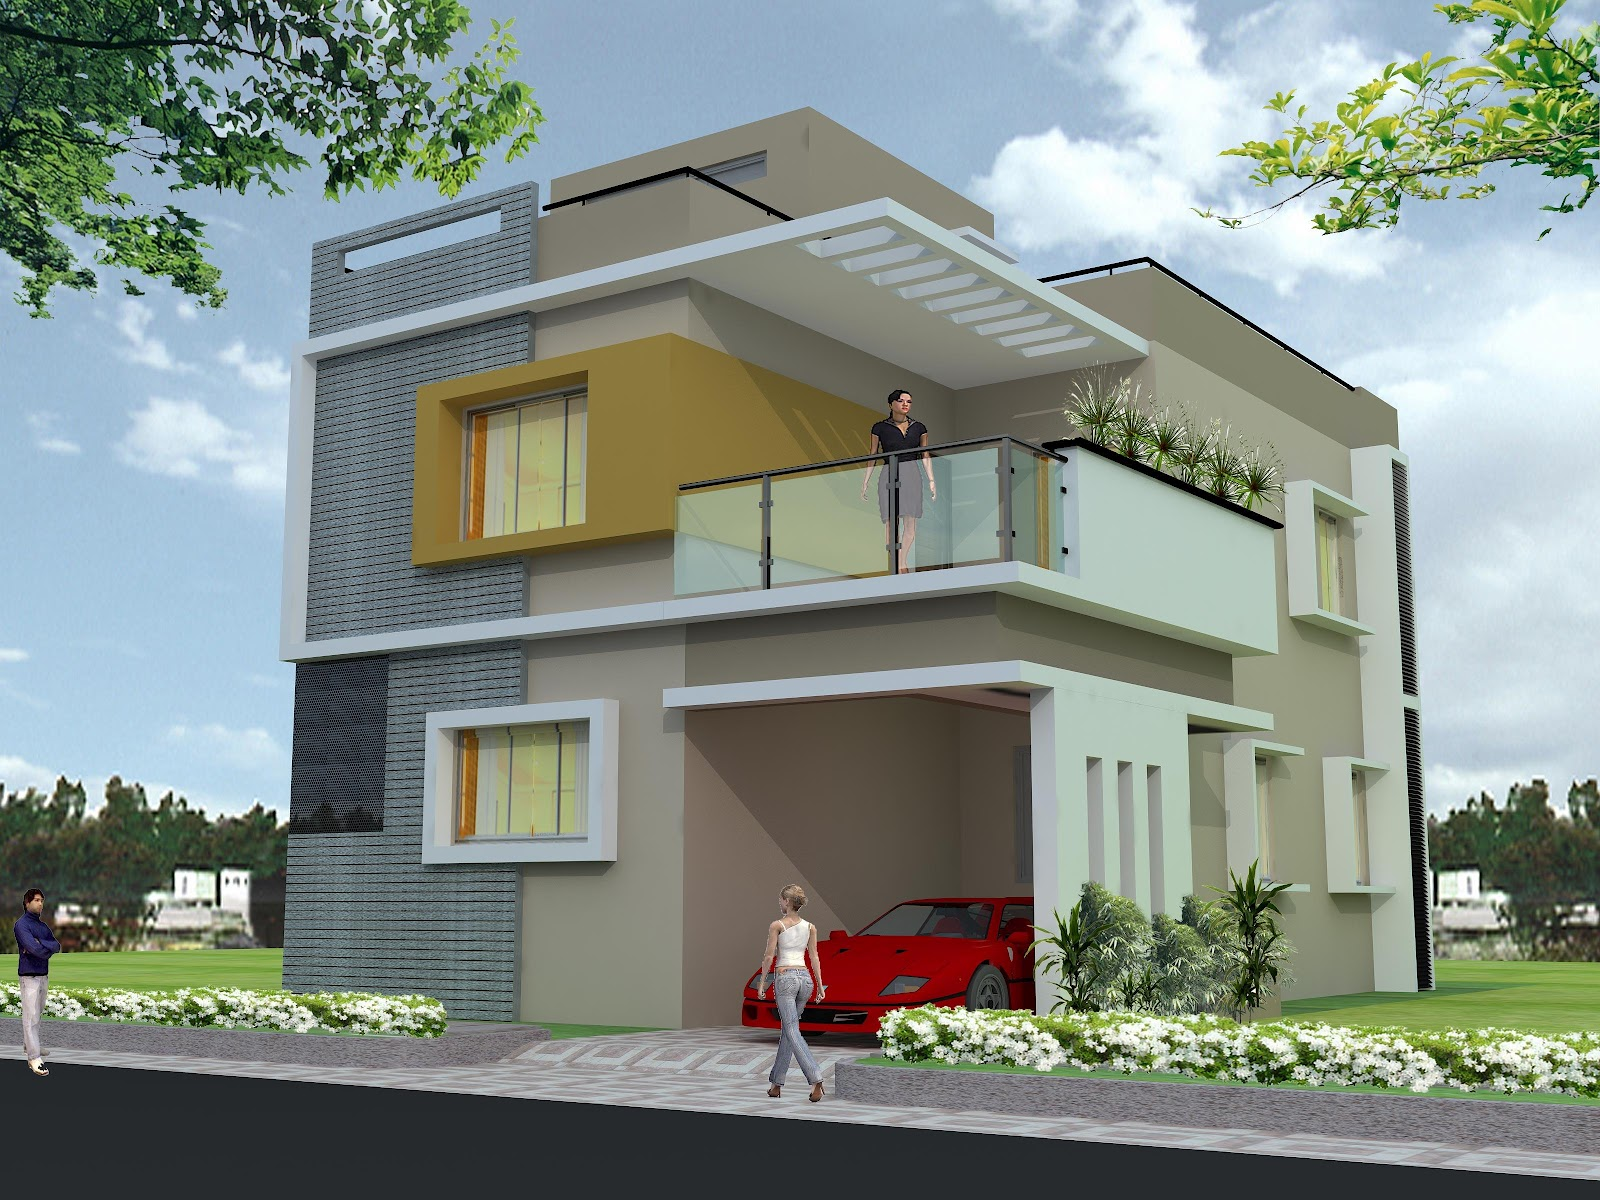 Lake shore villas designer duplex villas for sale in for 30x50 duplex house plans